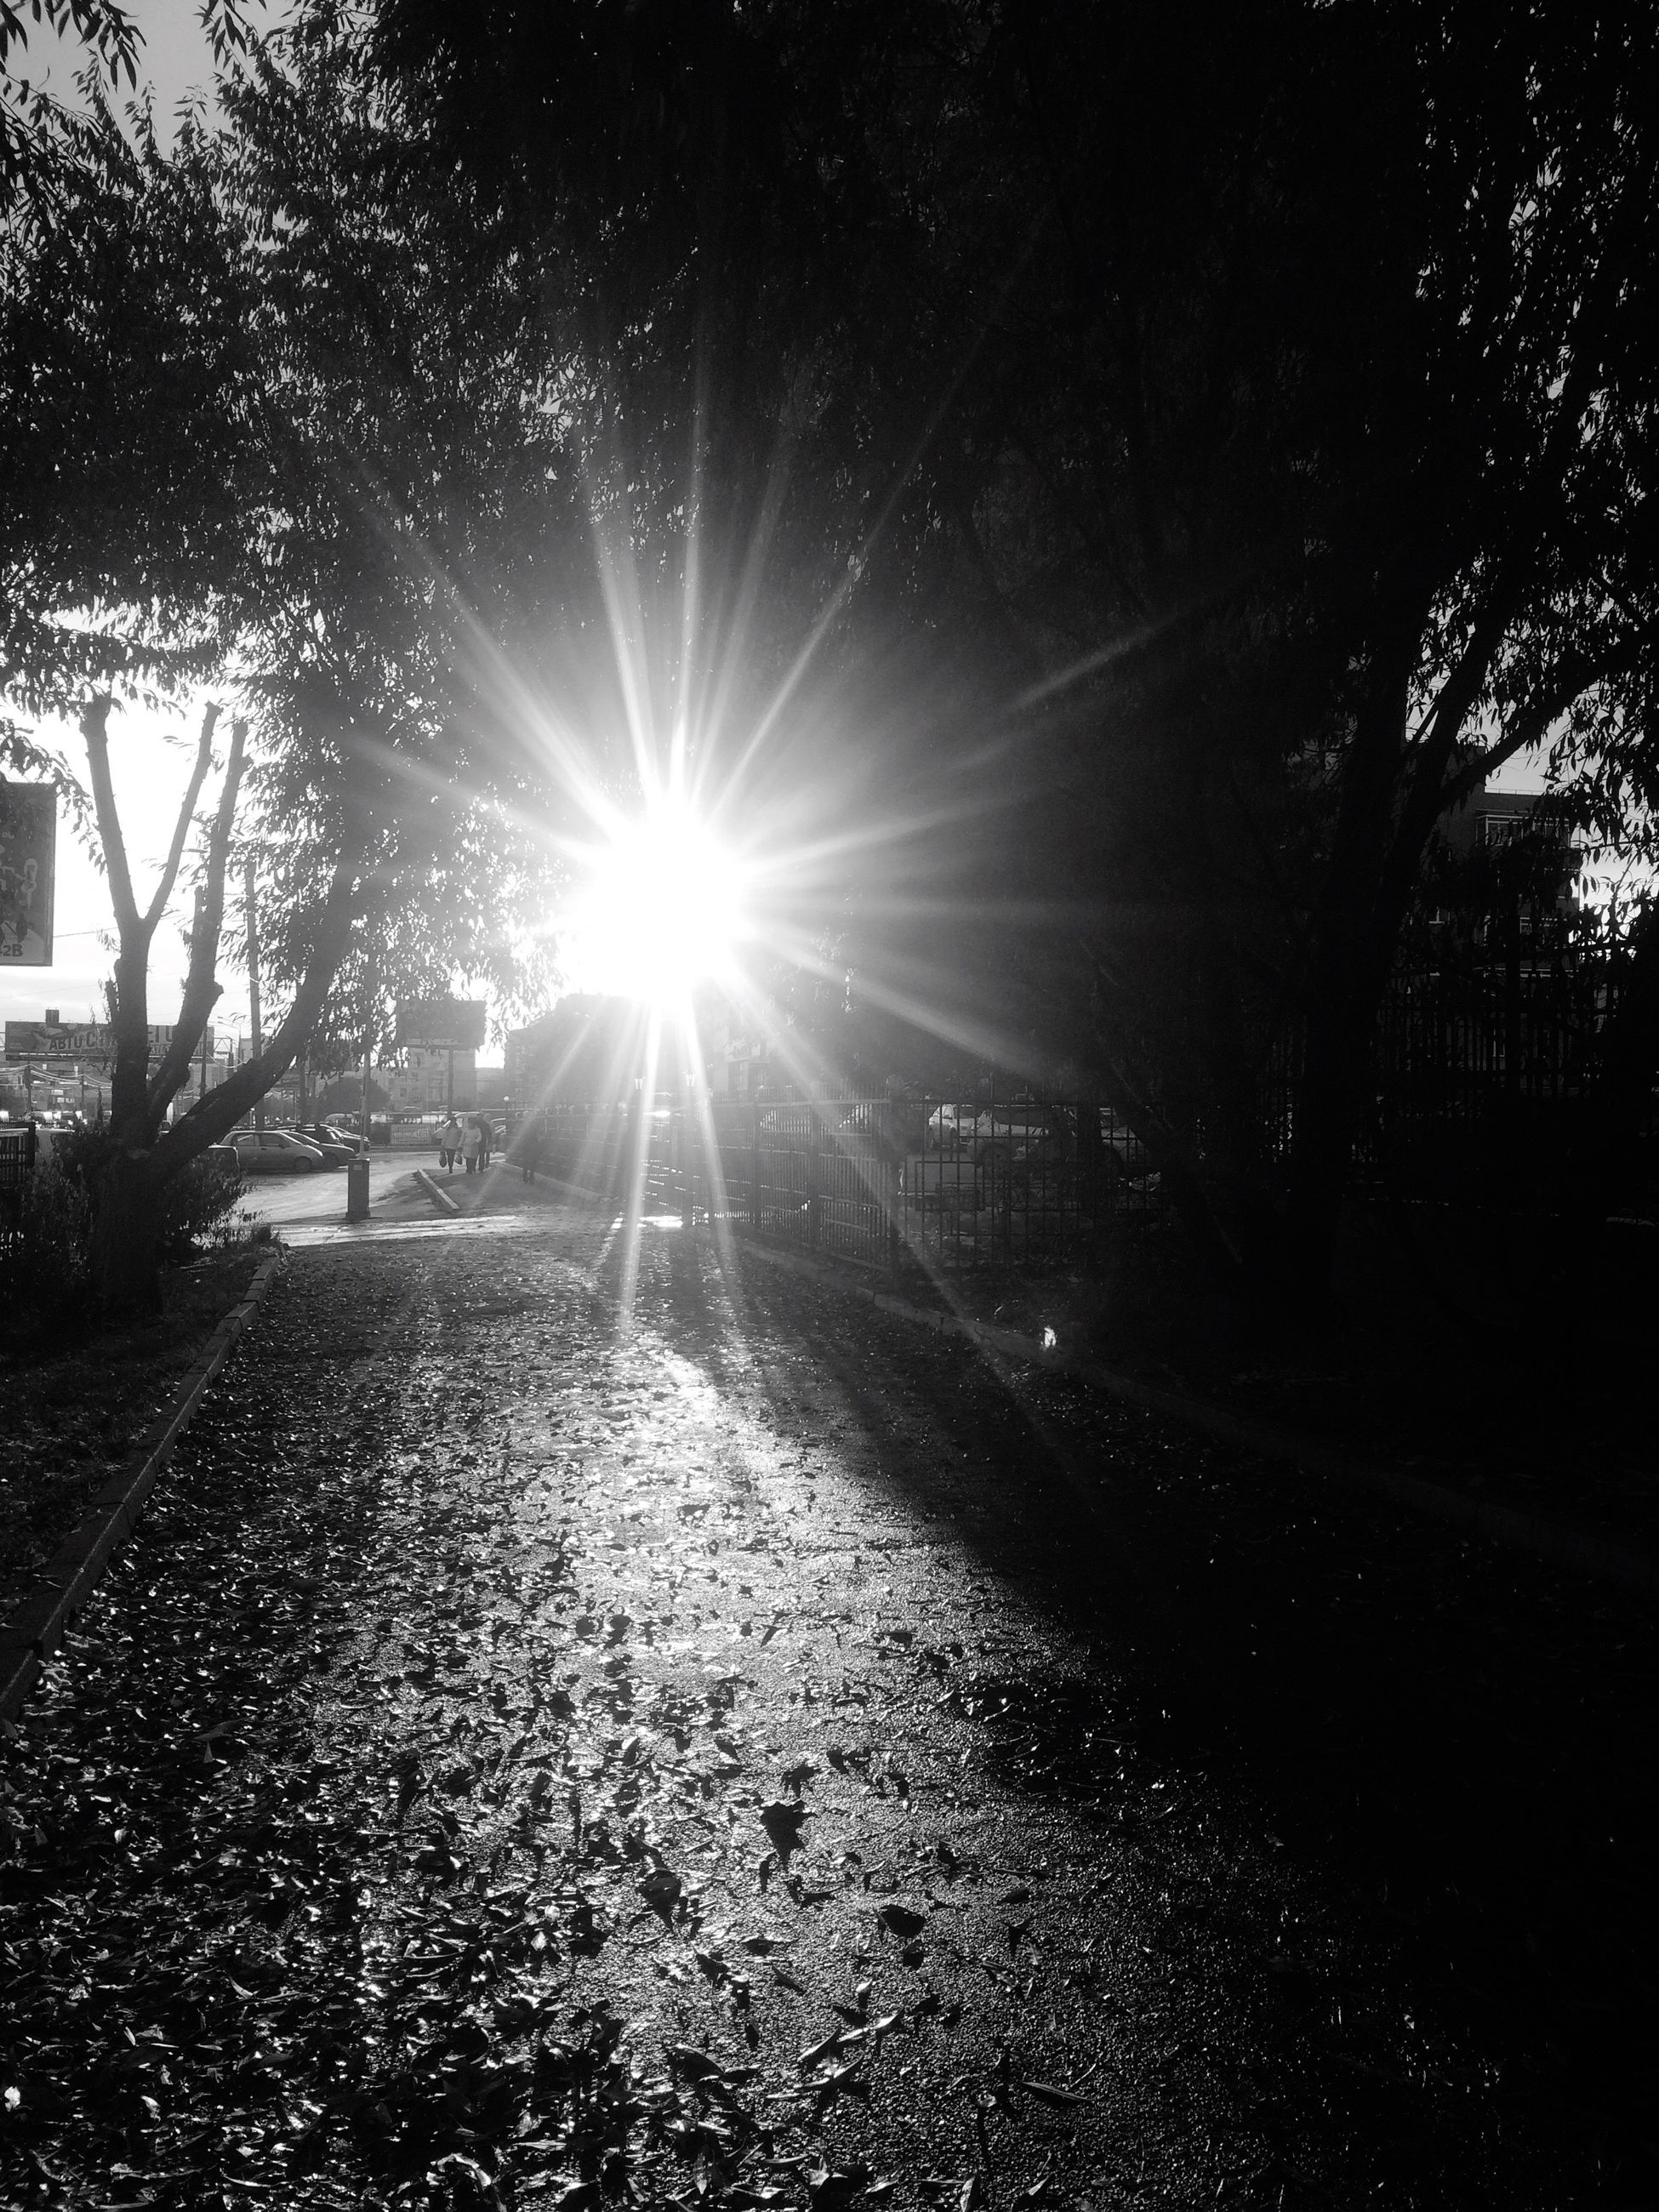 lens flare, sunbeam, tree, sunlight, sun, building exterior, footpath, tranquility, day, branch, tranquil scene, outdoors, lawn, nature, surface level, backlit, the way forward, remote, scenics, solitude, no people